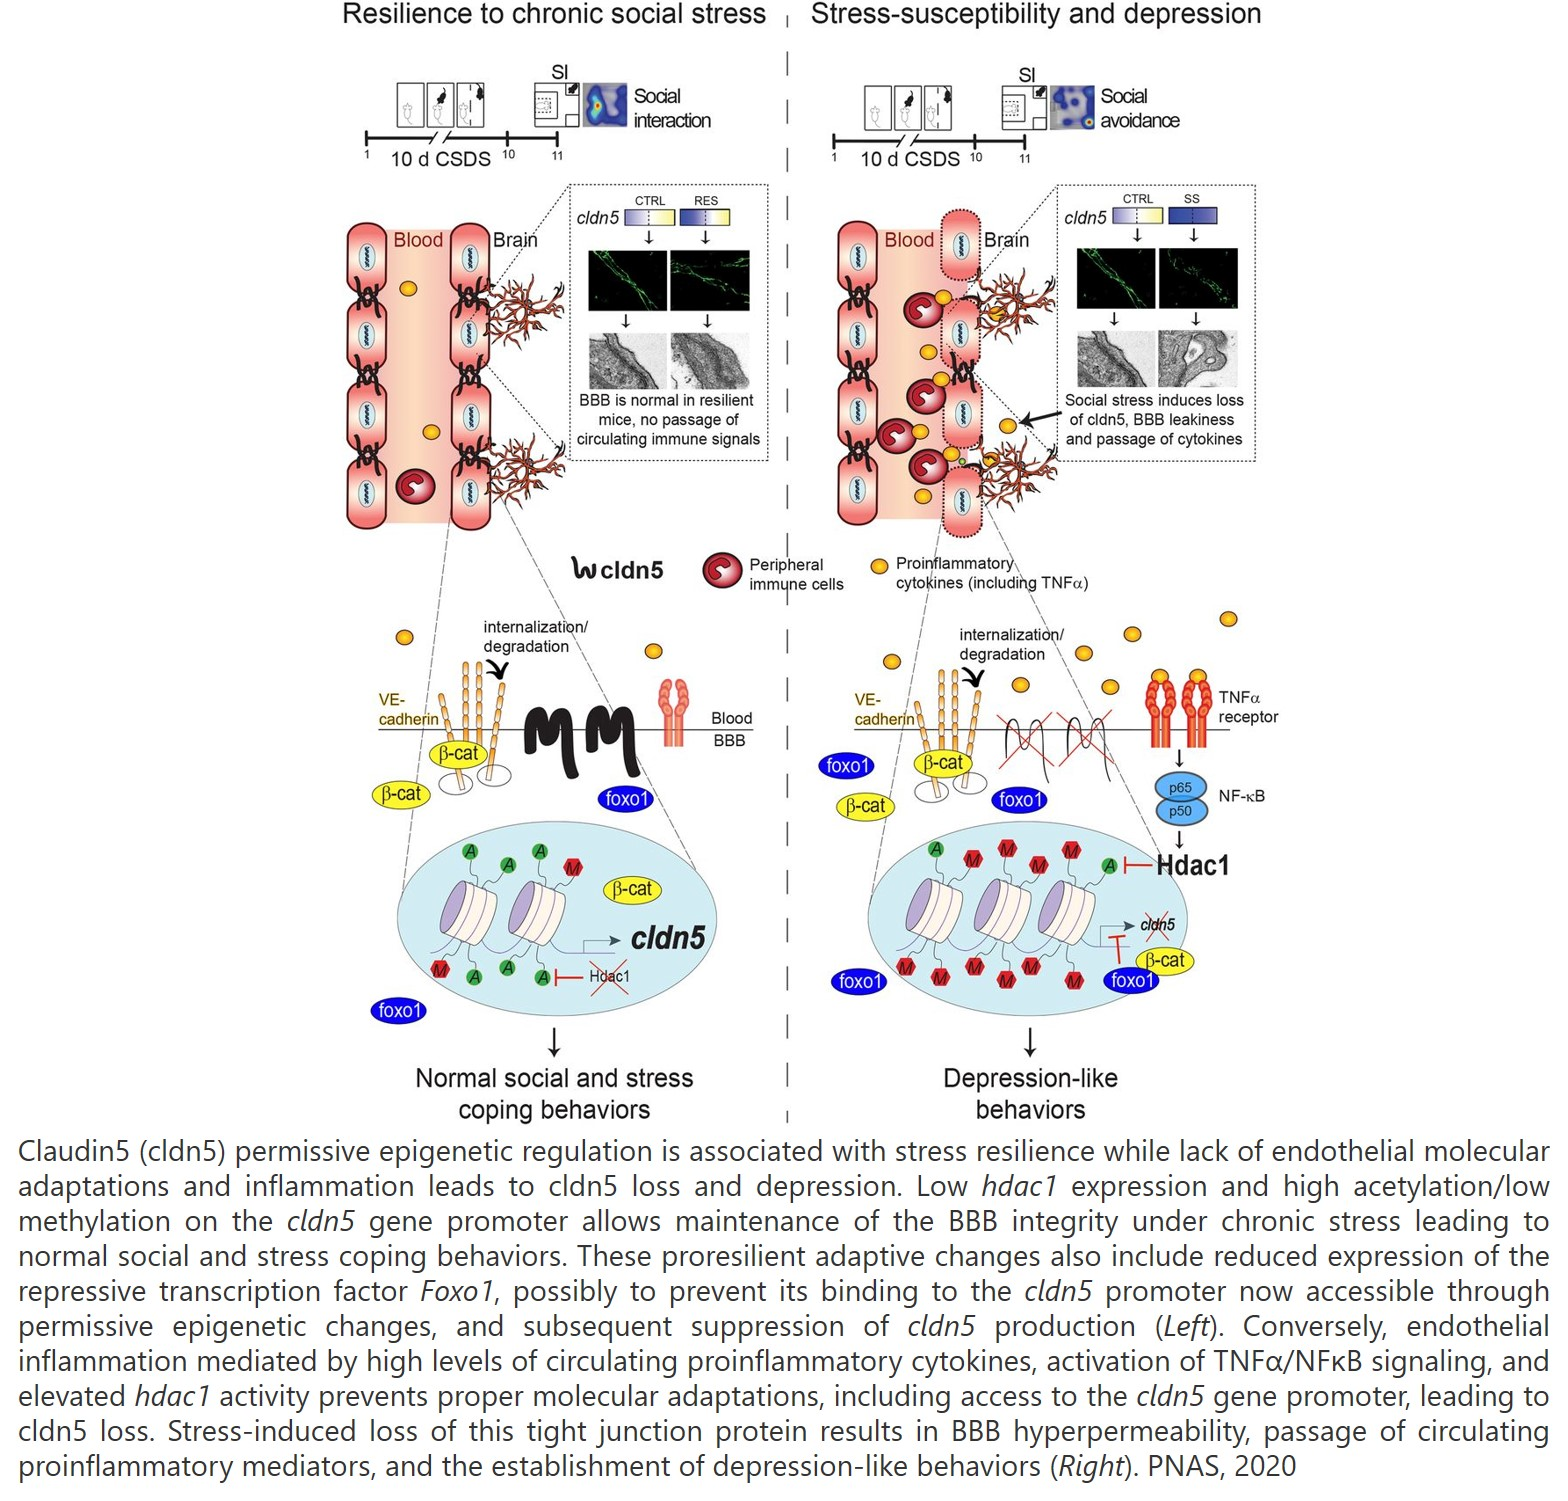 Blood-brain barrier restoration is necessary for the treatment of depression